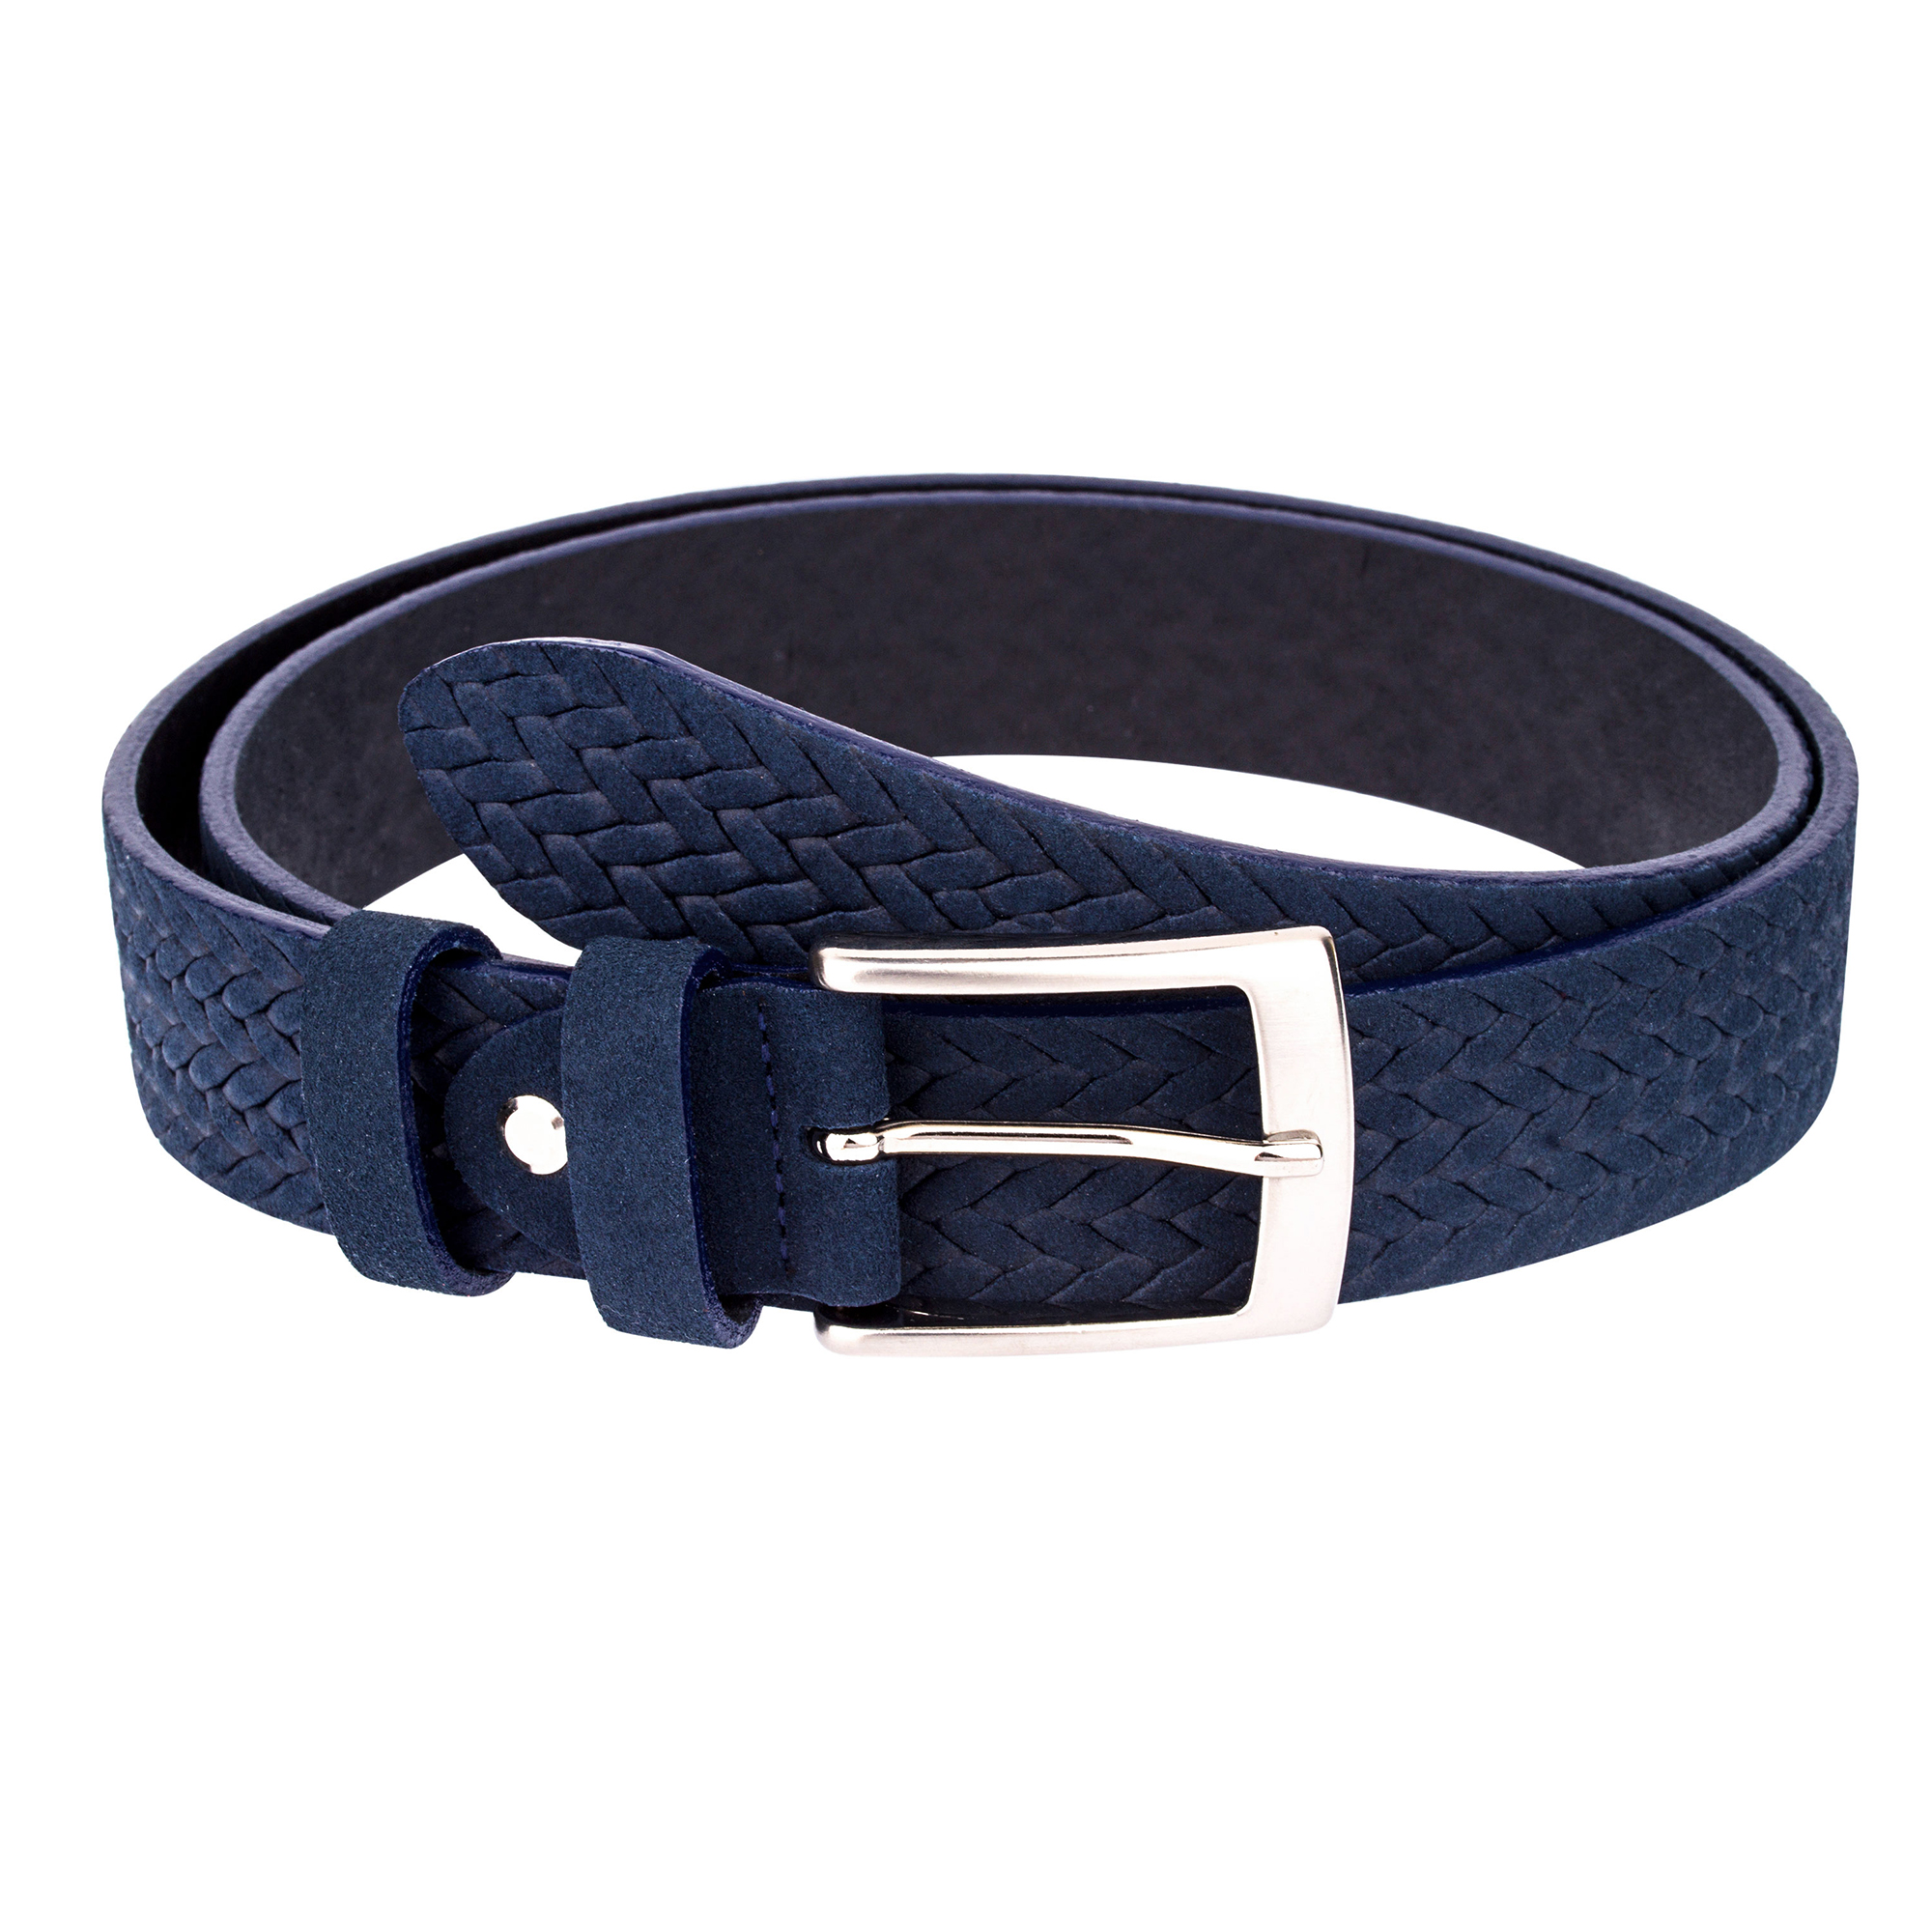 Capo Pelle Woven suede Leather belt Mens belts Women fashion Navy blue  First picture.jpg